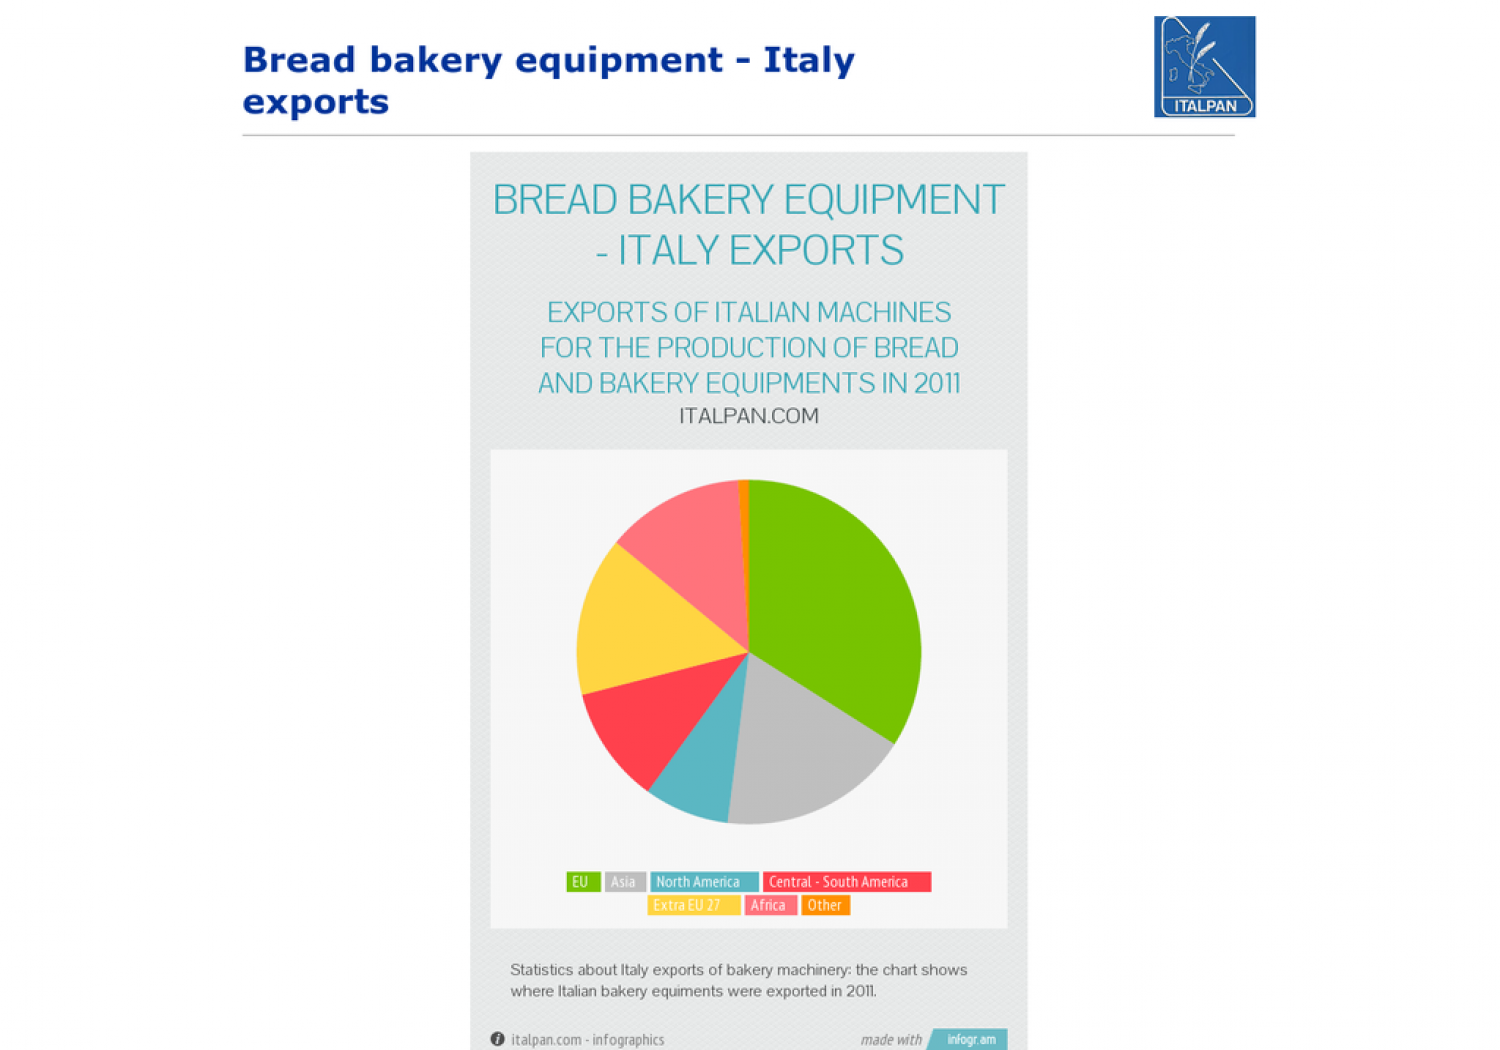 Bread bakery equipment - Italy exports Infographic